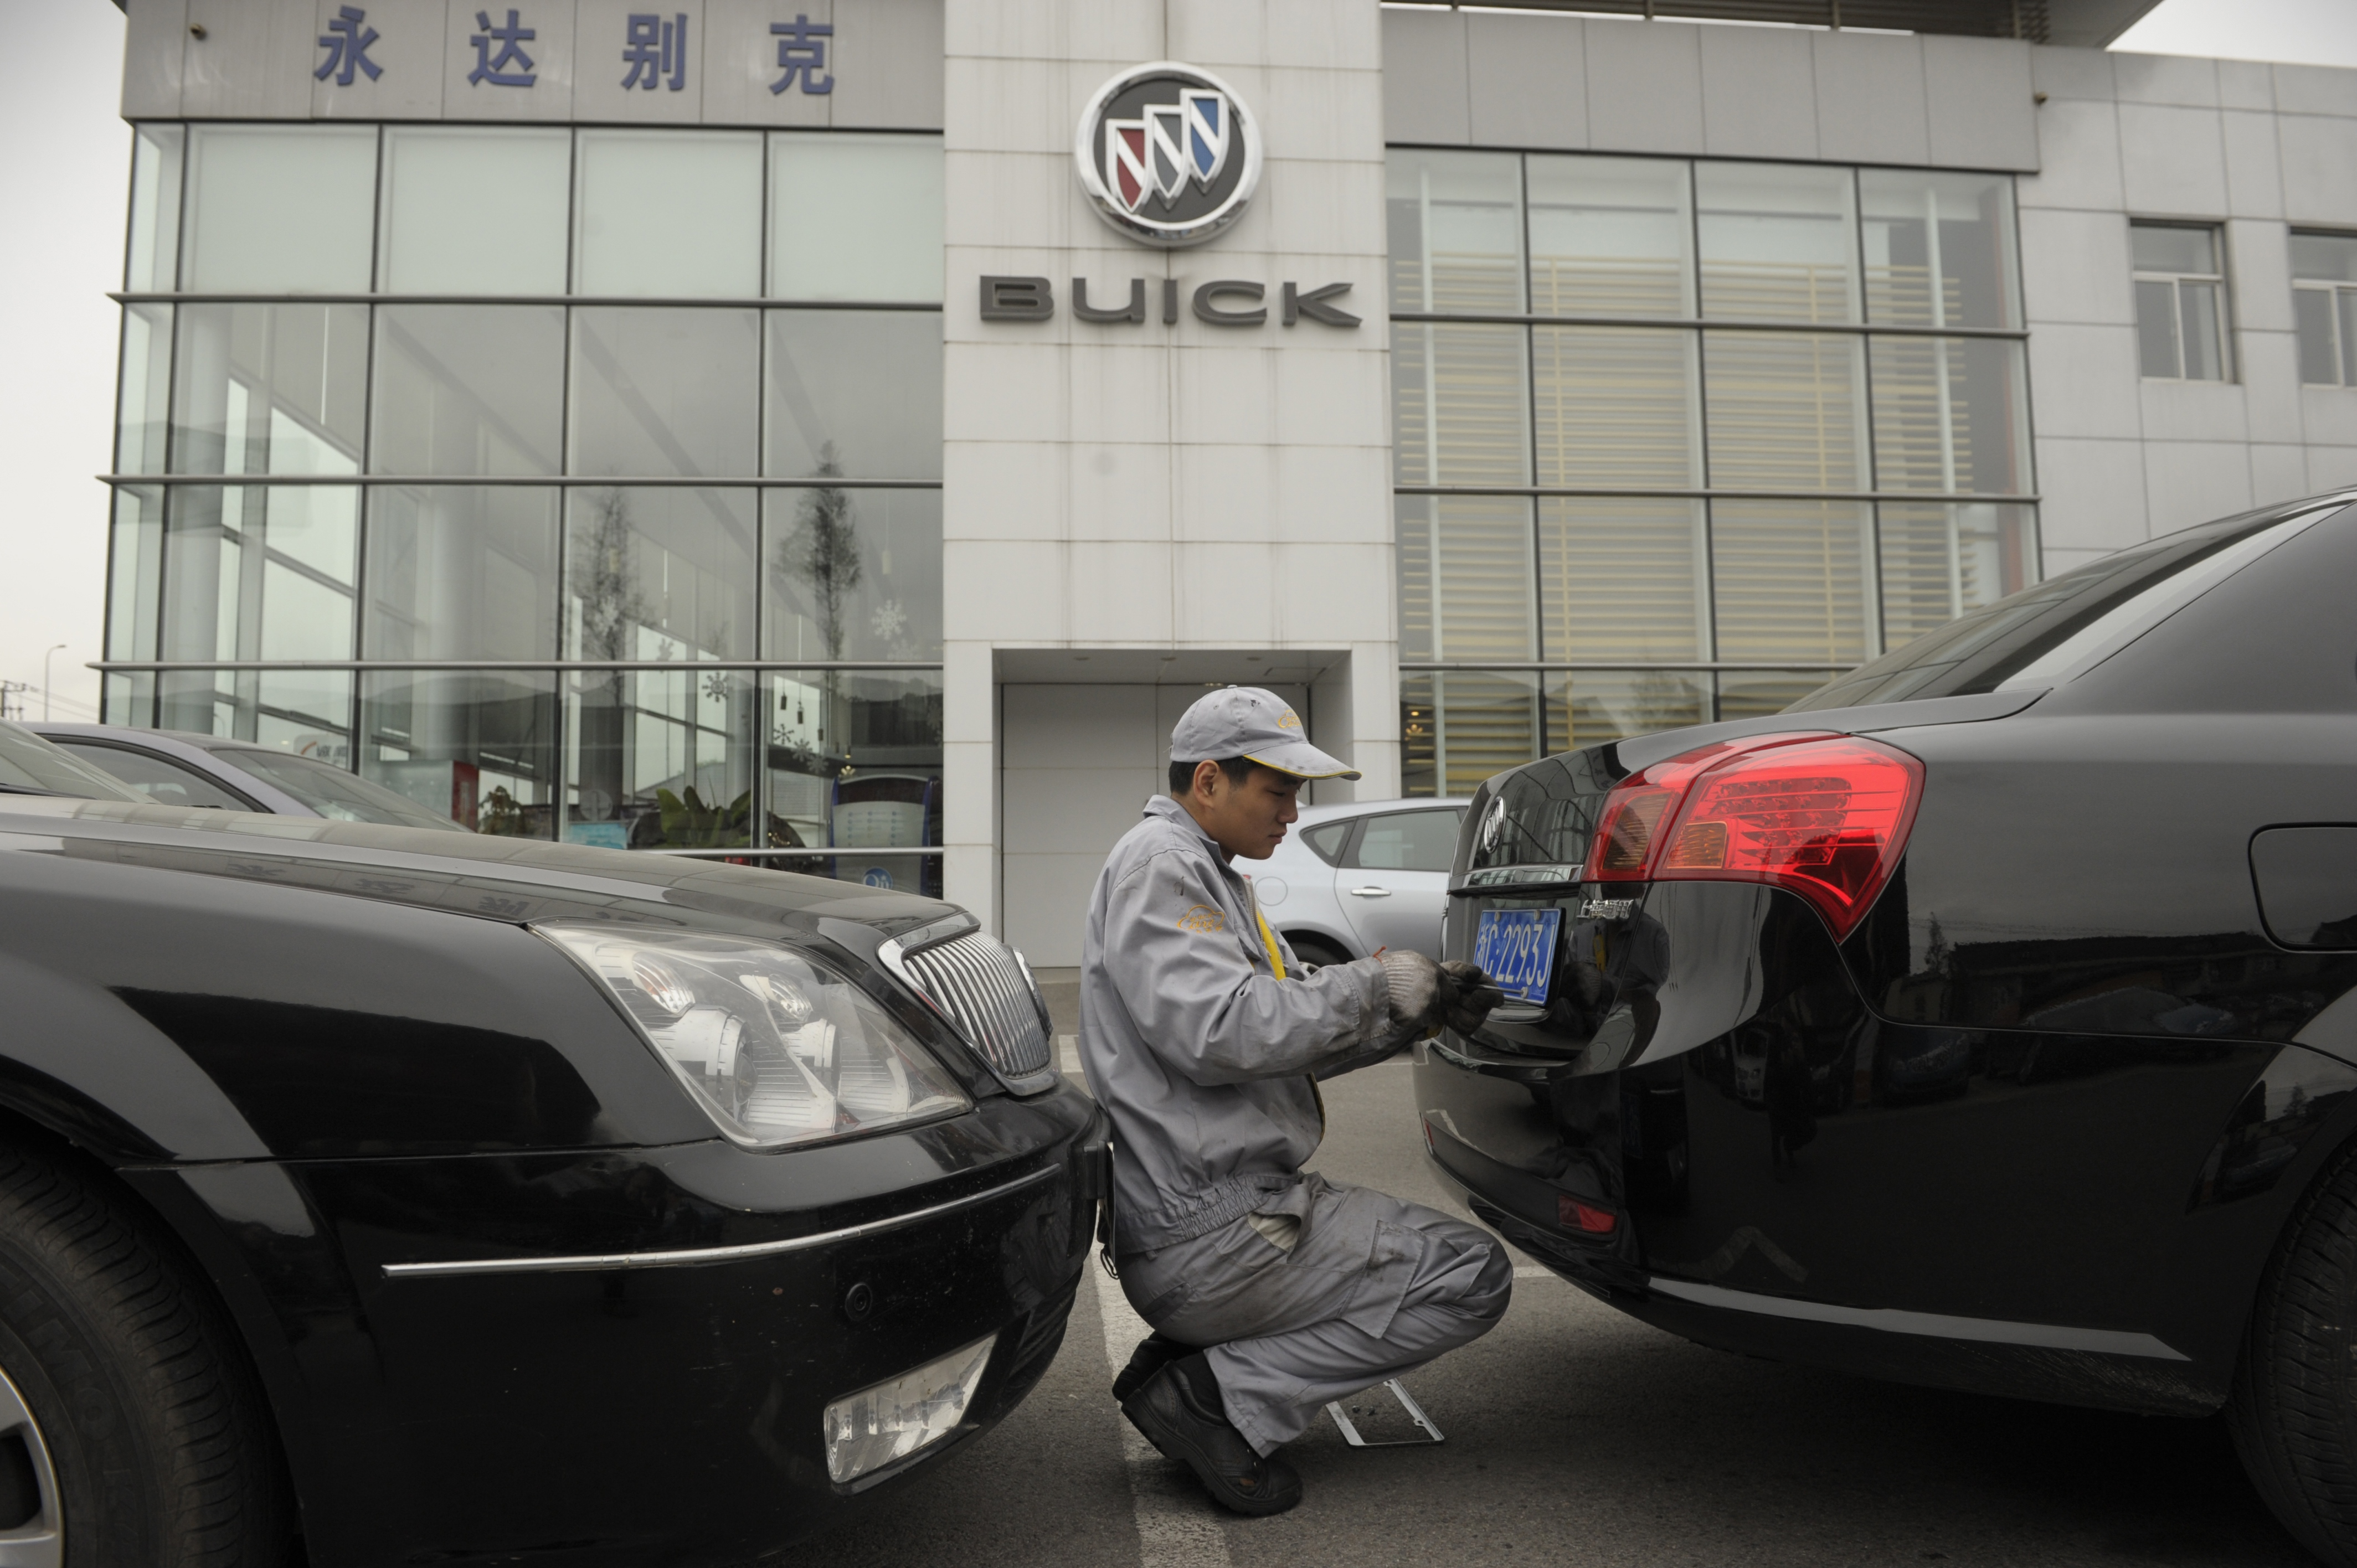 A mechanic works on a Buick at a General